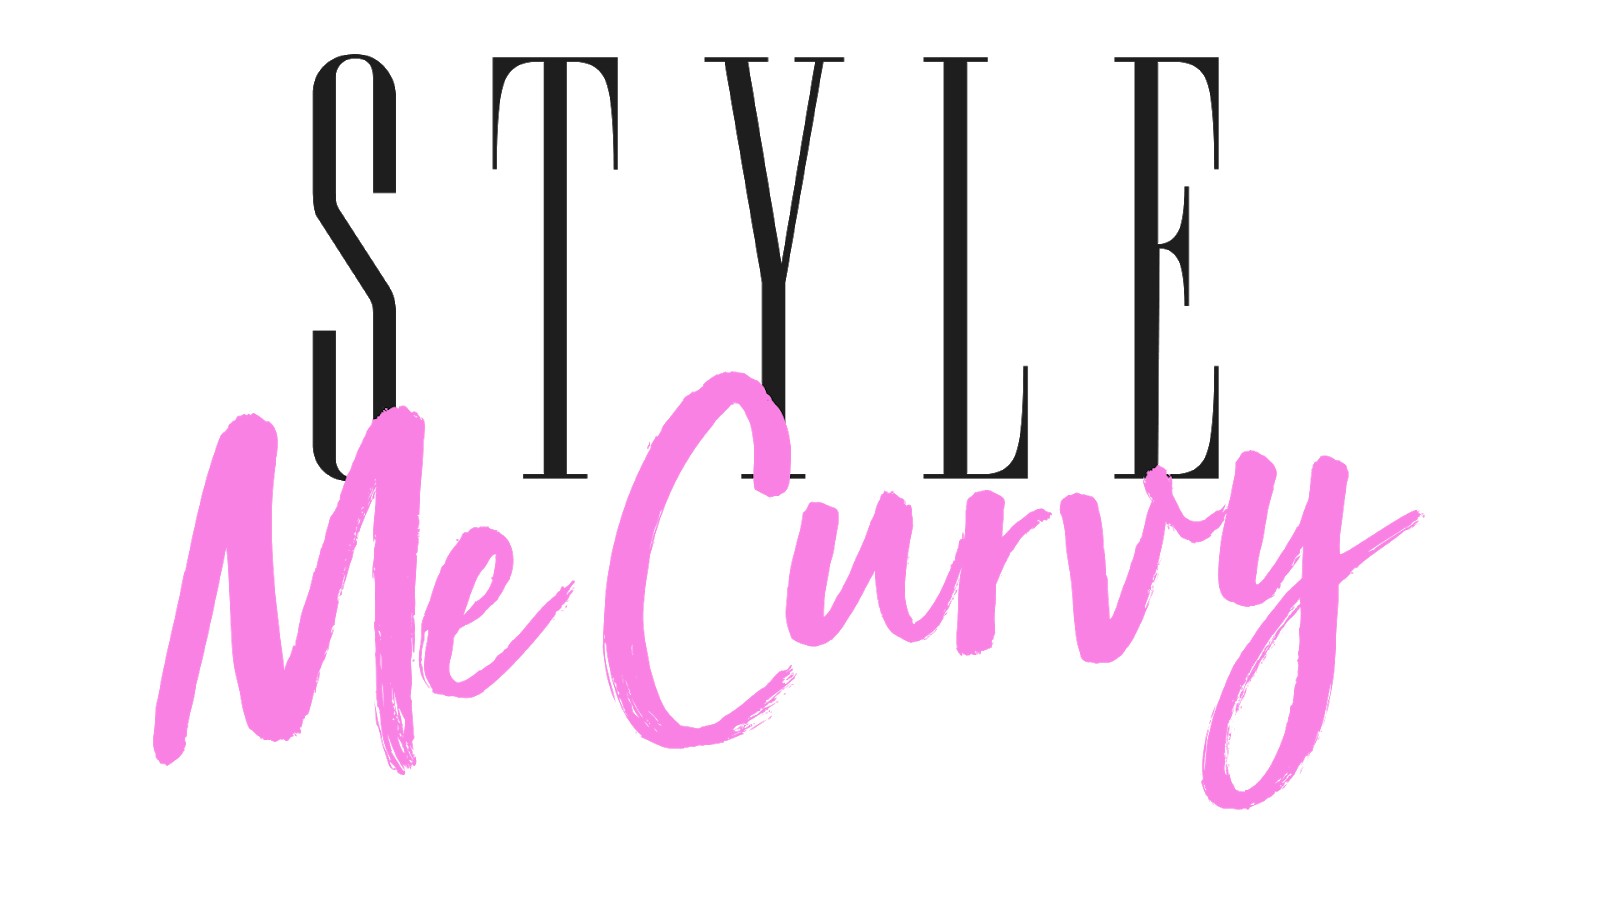 curvaceous body type